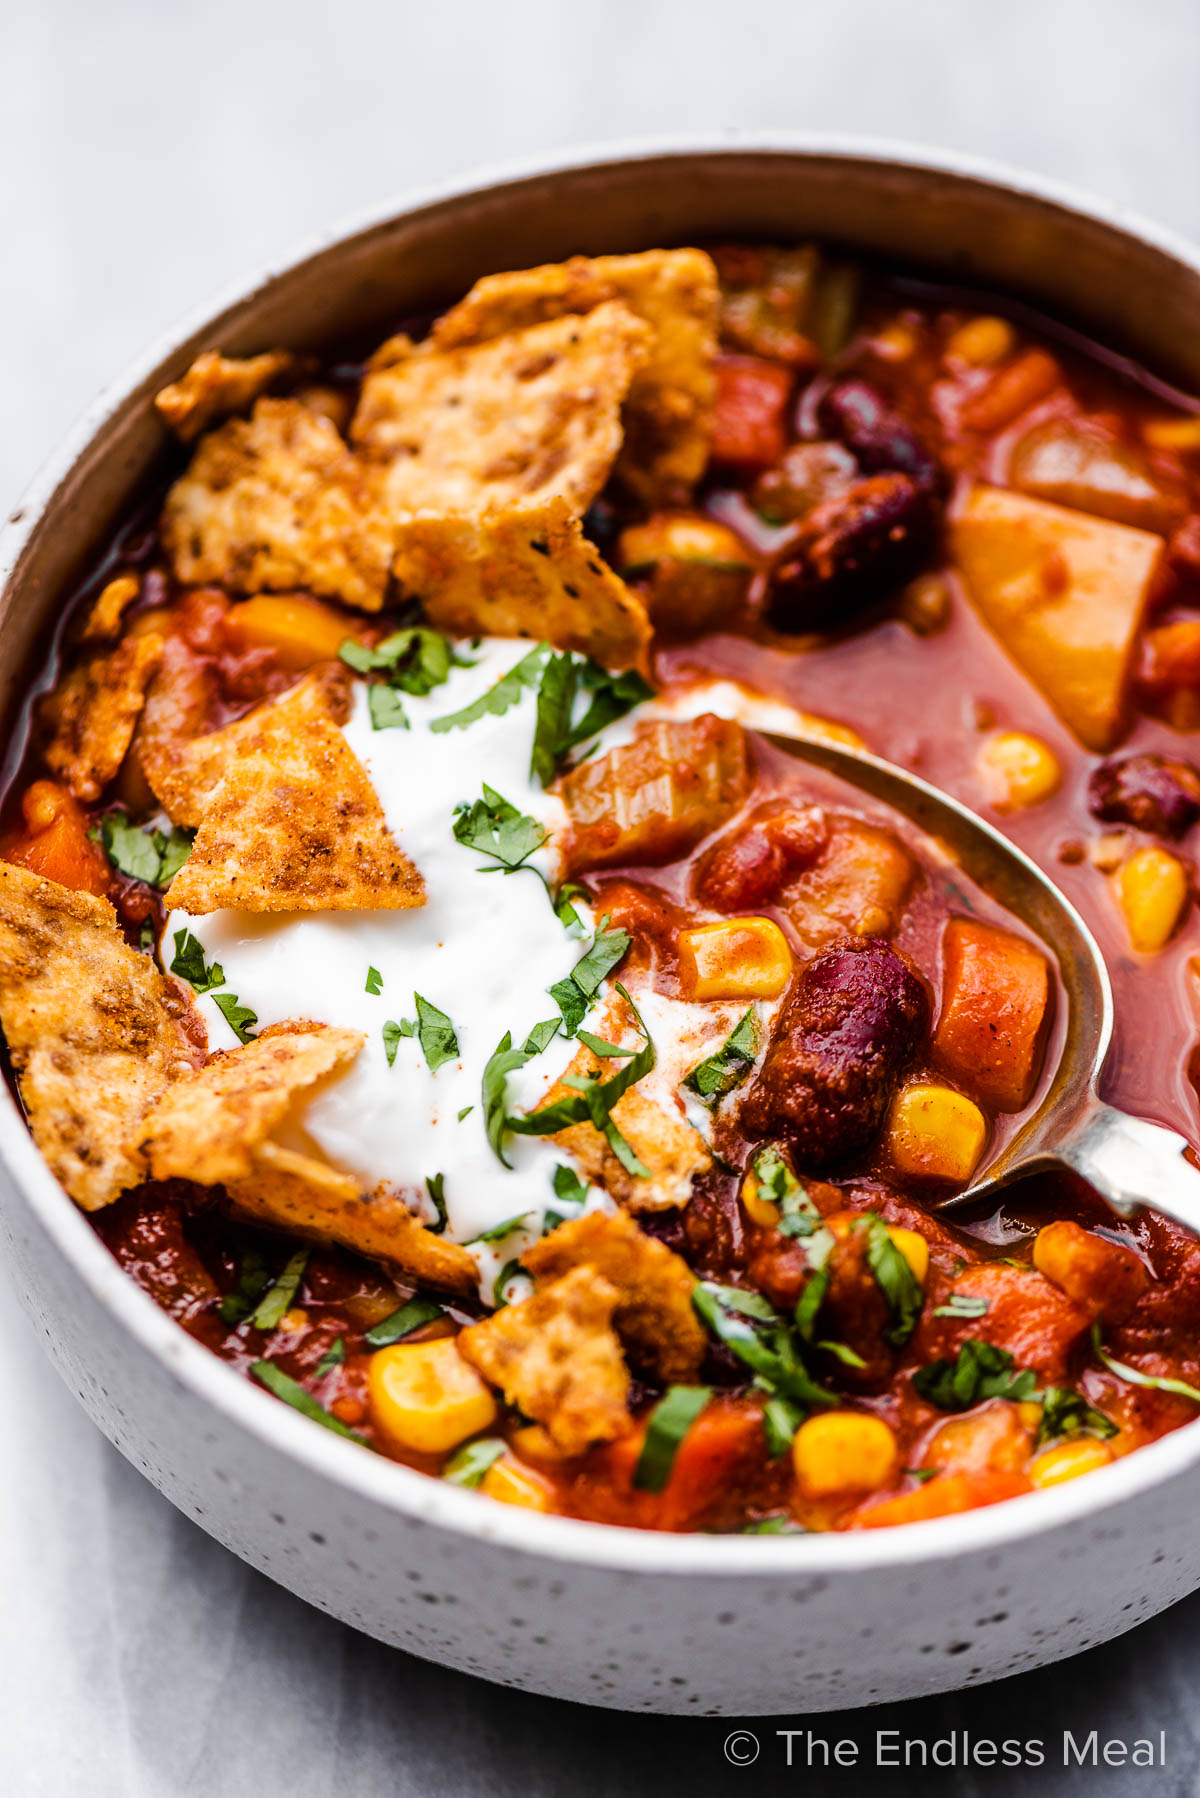 A spoon taking a scoop of this easy vegetarian chili recipe from a white bowl.